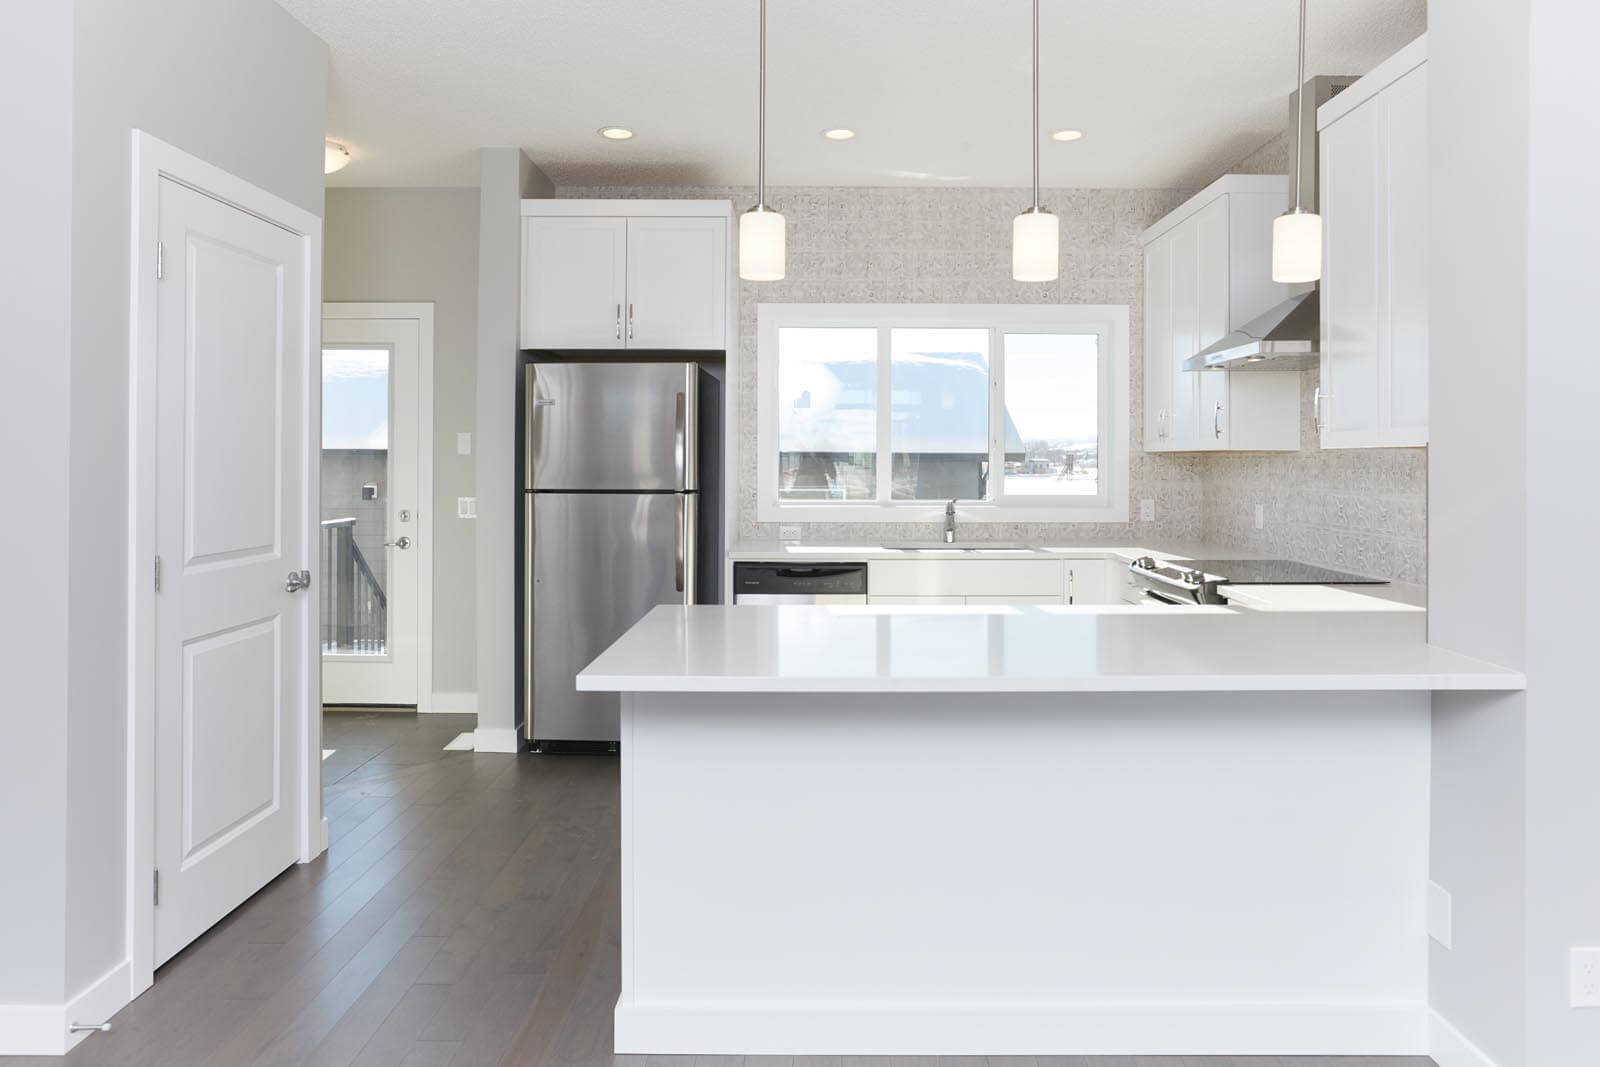 New Calgary Paired Home Quick Possession Cobalt 1 in Walden, located at 1310 Walden Drive SE Built By Cardel Homes Calgary